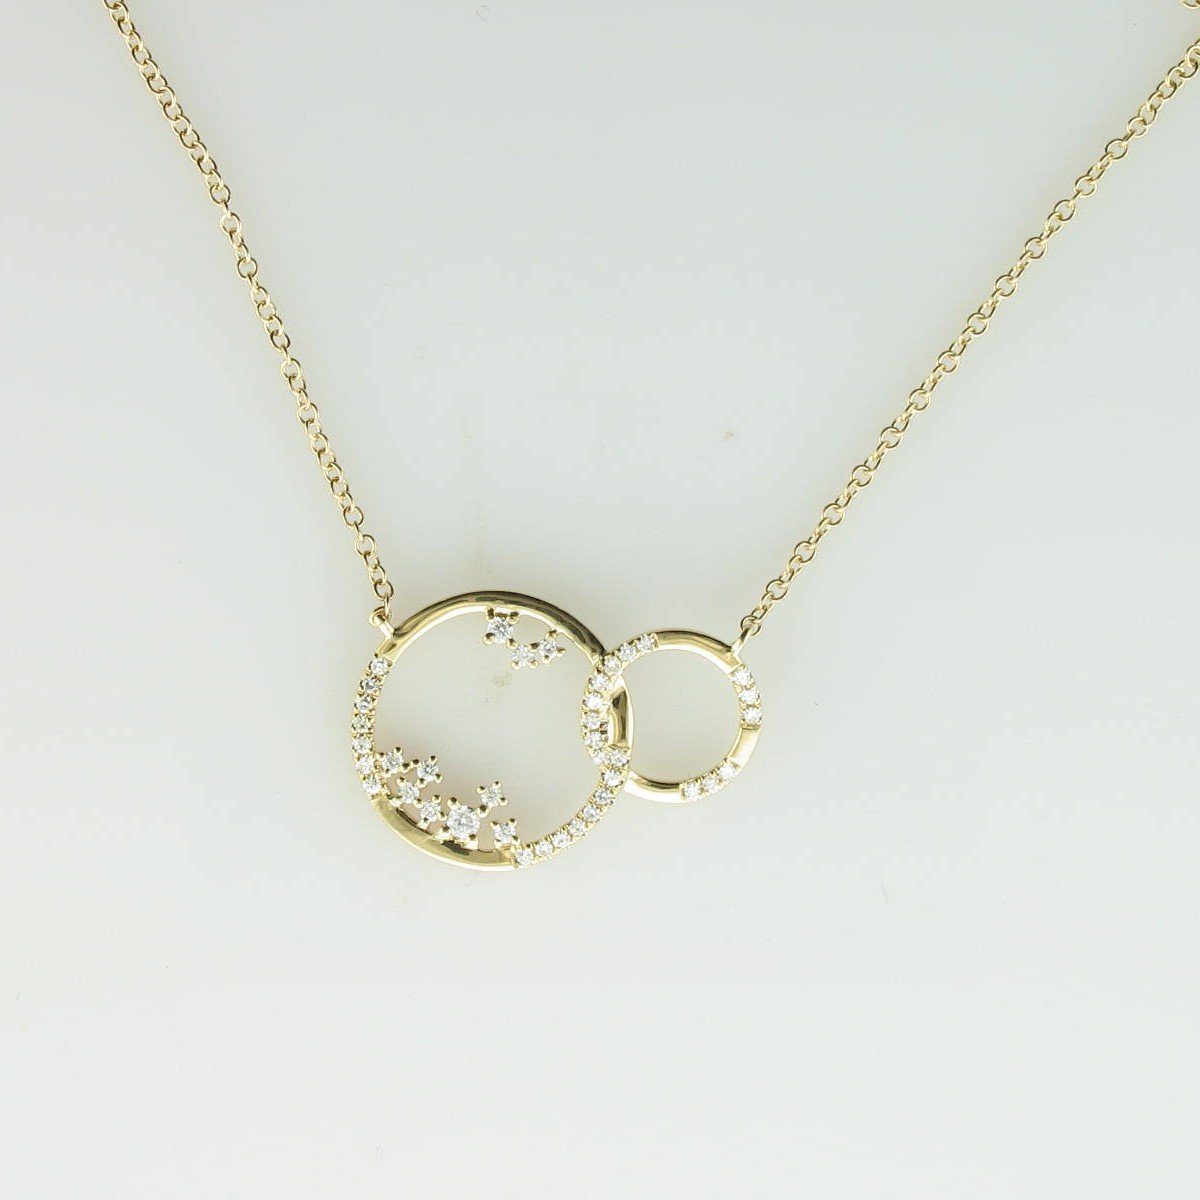 0.15tcw Diamond Connected Circles Necklace set in 14K Yellow Gold